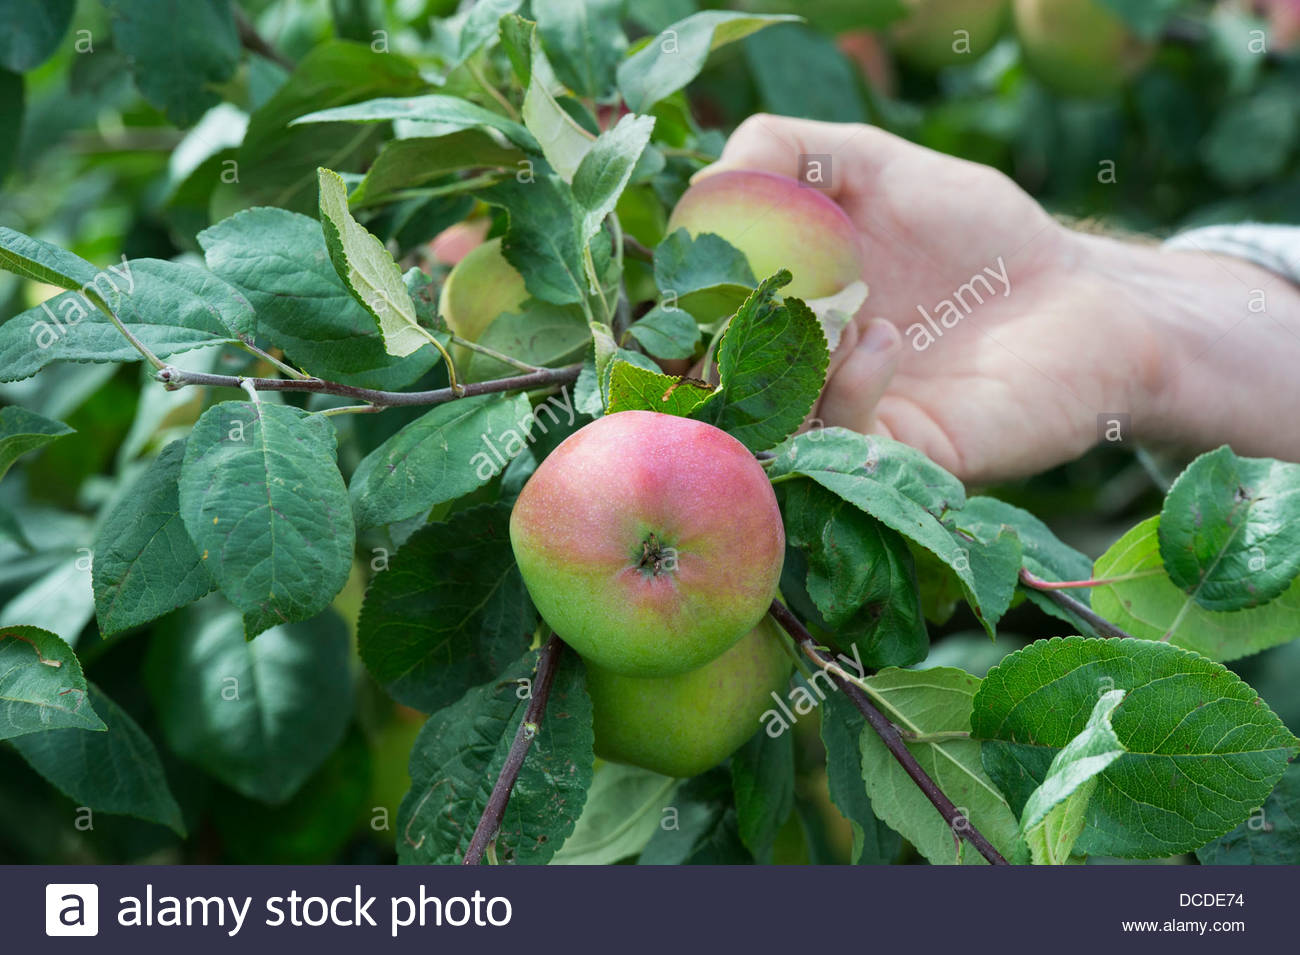 malus domestica 39 red melba 39 hand picking an apple from a tree stock photo royalty free image. Black Bedroom Furniture Sets. Home Design Ideas